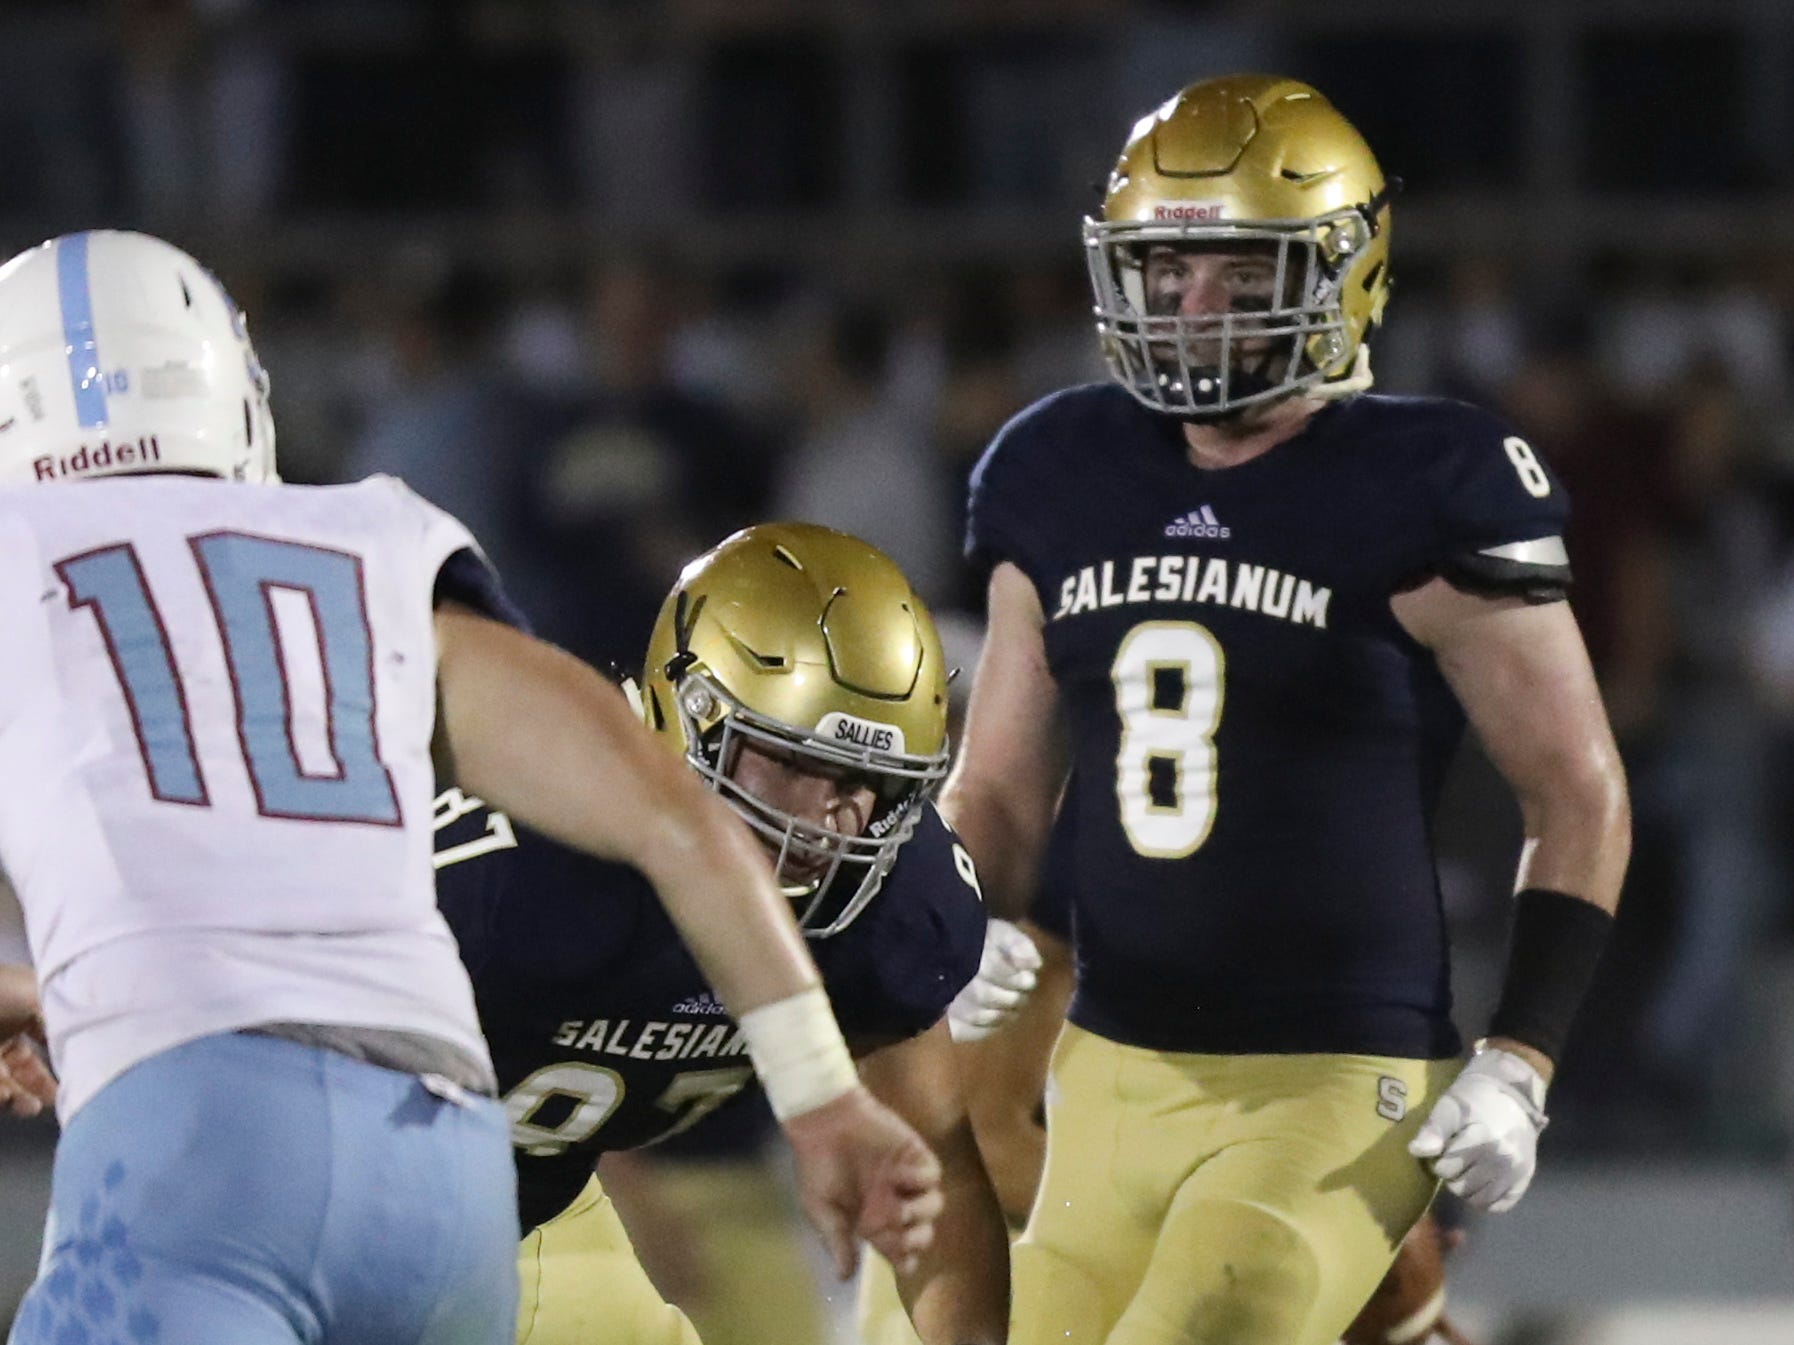 Salesianum's Luke Schneese (87) and Logan Bushweller move at the snap on offense in the second half of Salesianum's 21-14 win at Baynard Stadium Friday.